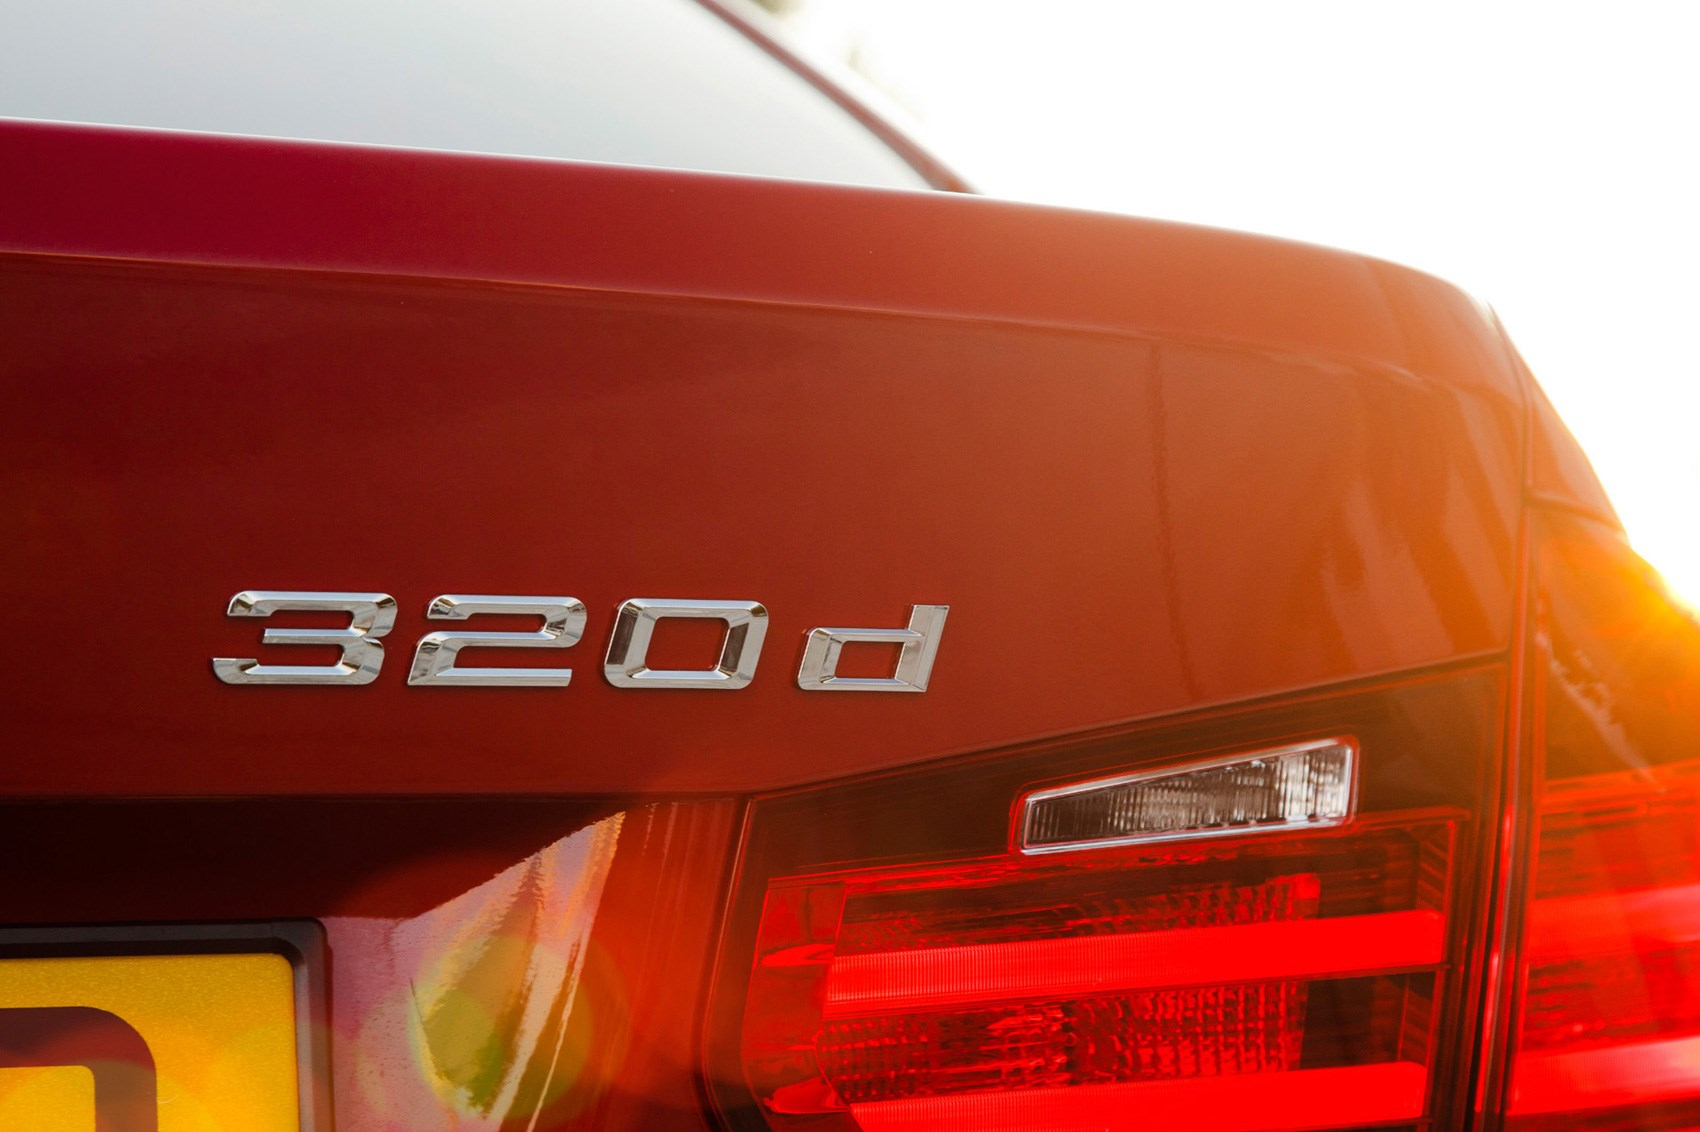 BMW 320d Saloon is a very popular version of the current 3 Series